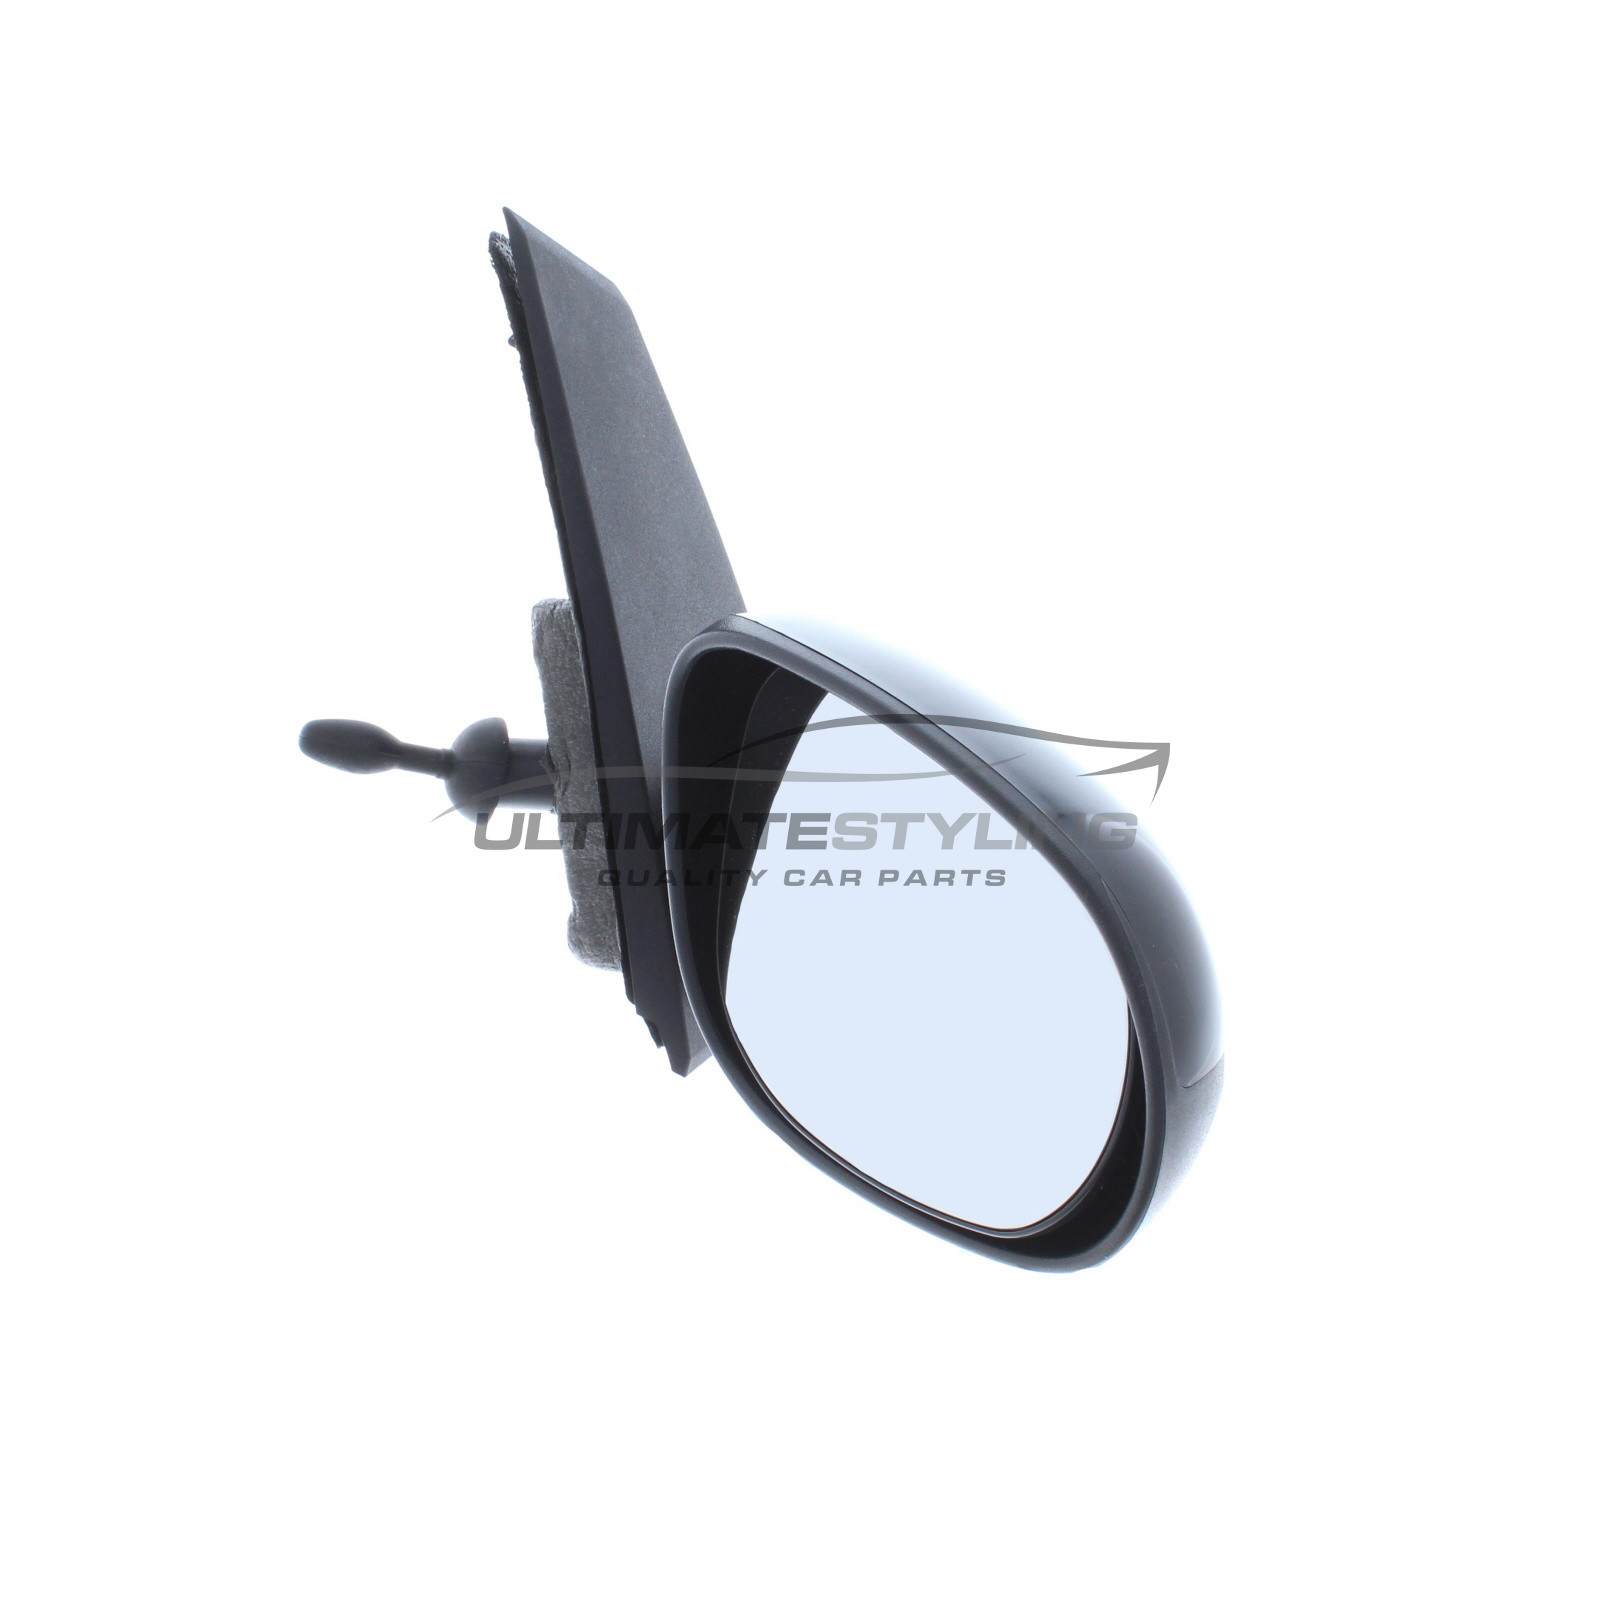 Ford Ka Wing Mirror Door Mirror Drivers Side Rh Cable Adjustment Non Heated Glass Black